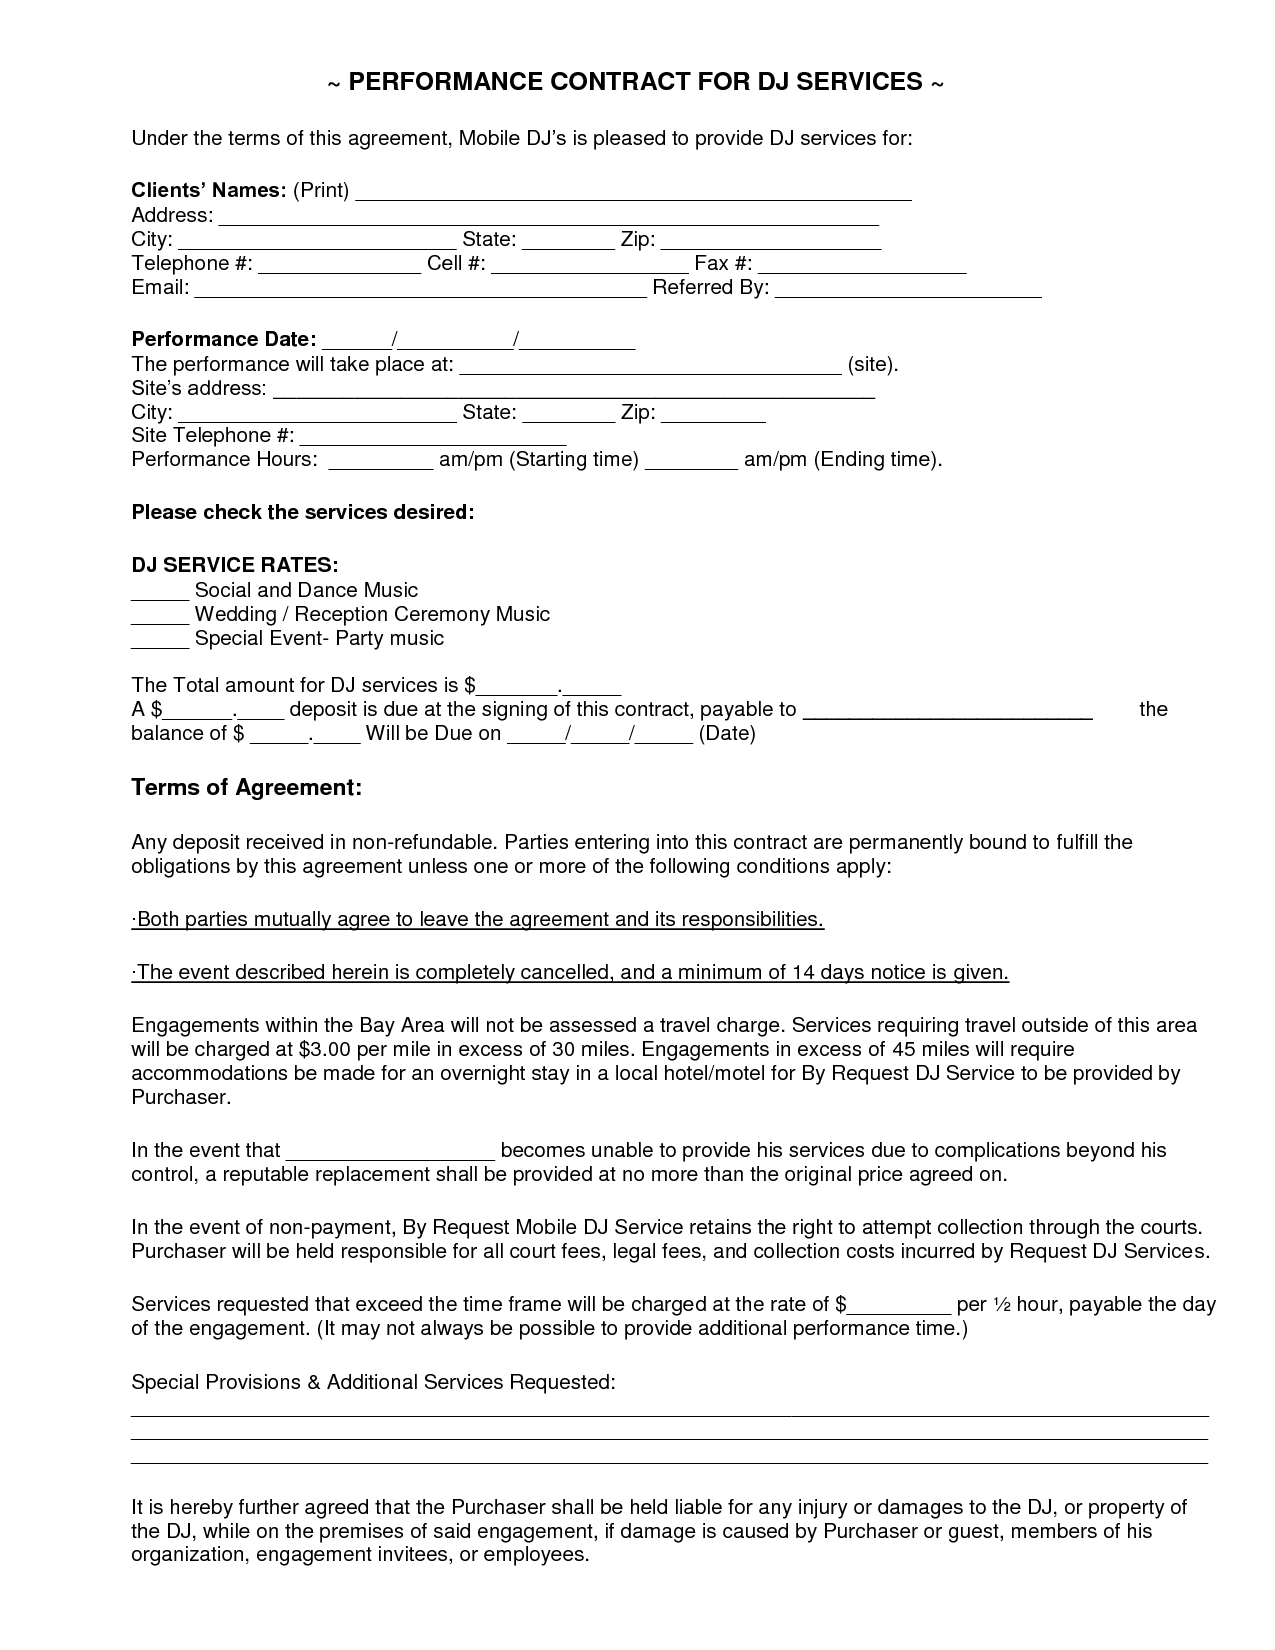 Mobile Dj Contract | Dj Service Contract 2011 Current